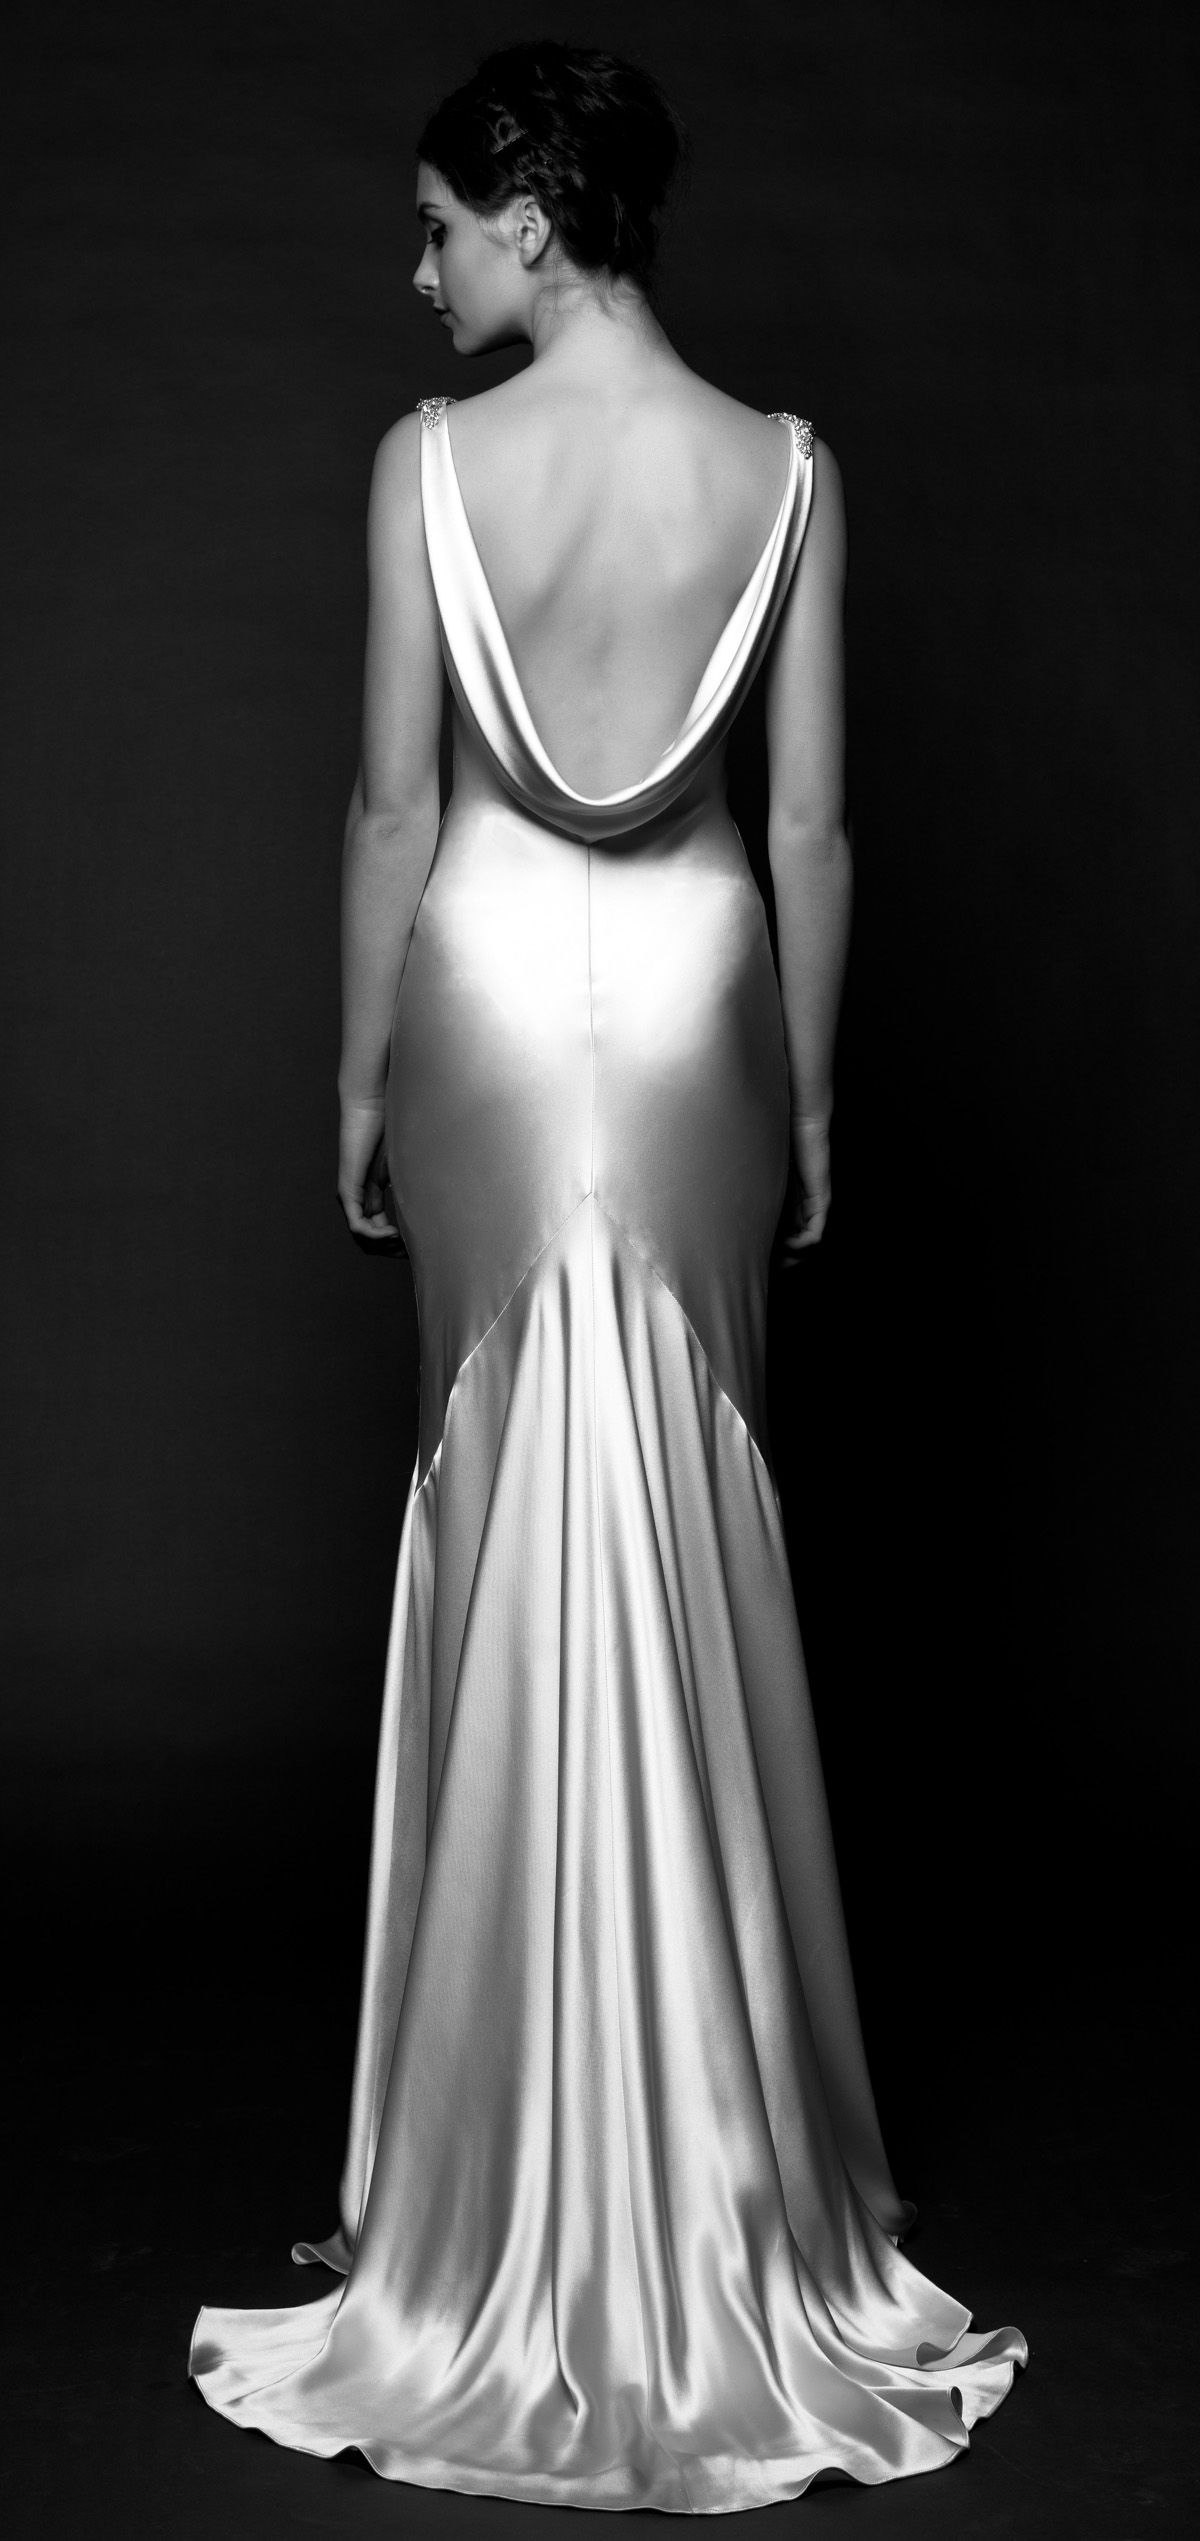 Sarah janks wedding dresses fall 2014 minimalist art deco and gowns daxa wedding gown fluid silk charmeuse and minimalist architectural seams sculpt daxas bewitching shape art deco inspired crystal details junglespirit Image collections